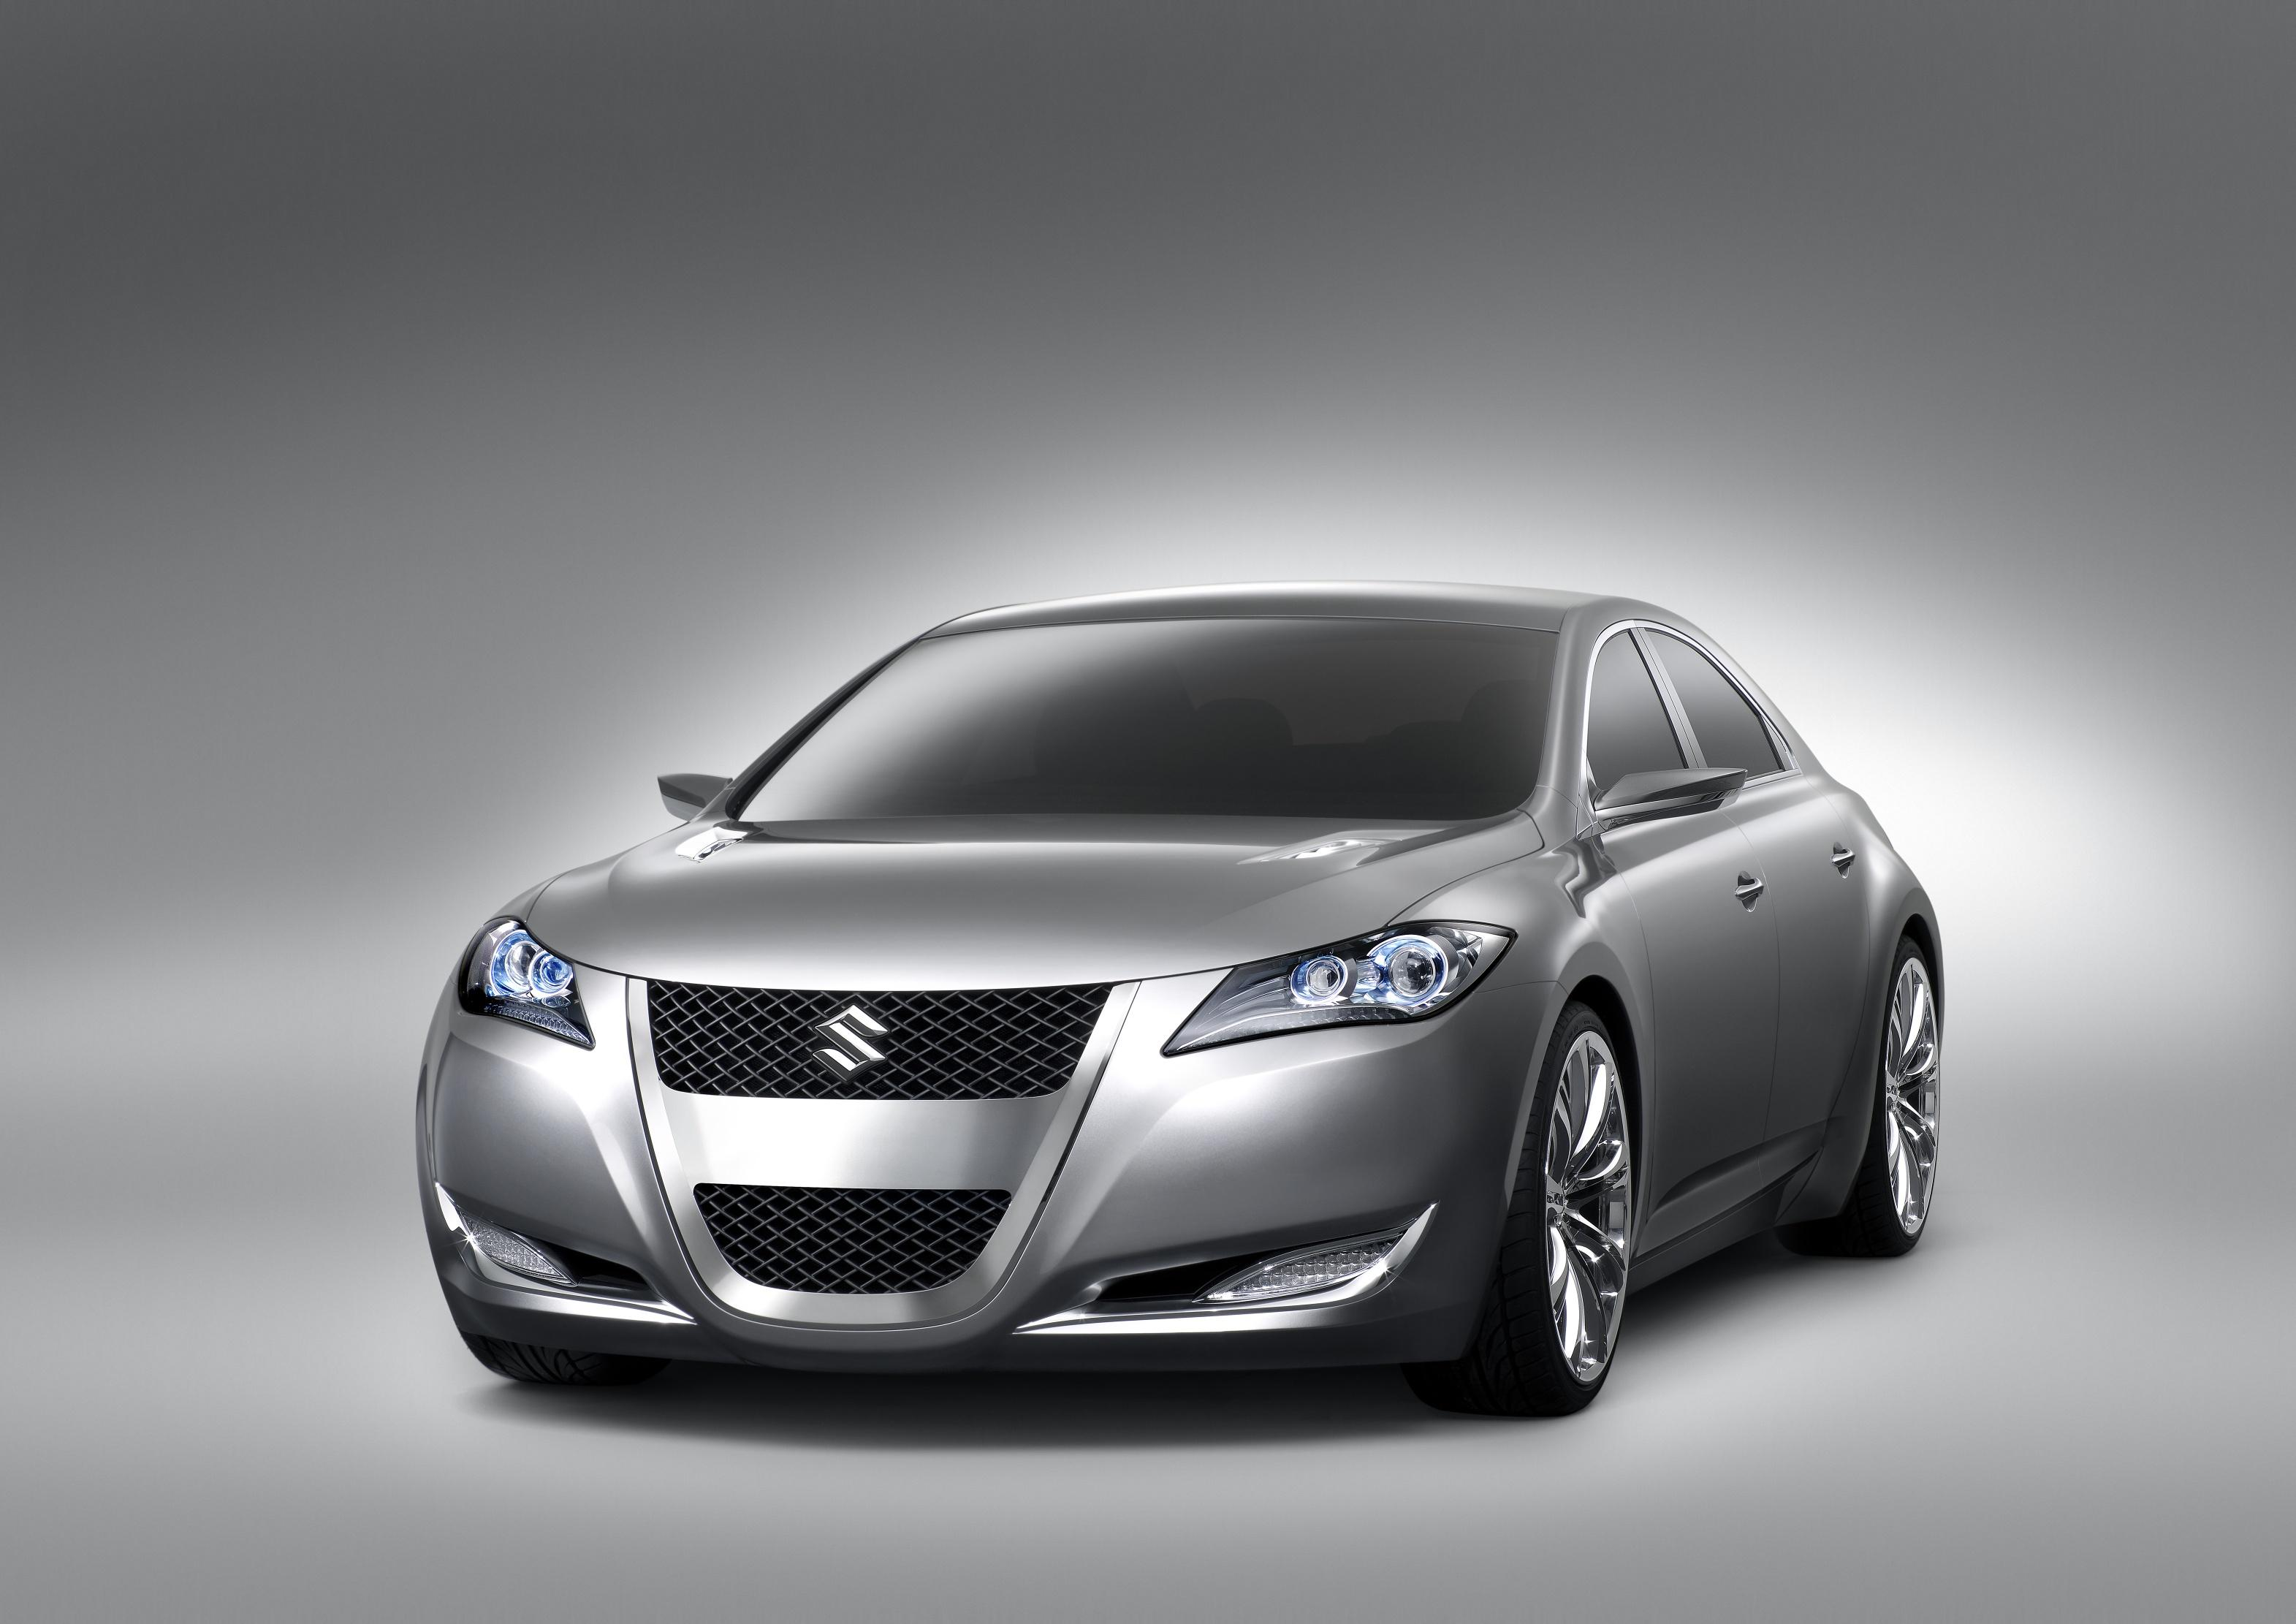 Suzuki Kizashi Reviews, Specs, Prices, Photos And Videos | Top Speed. »